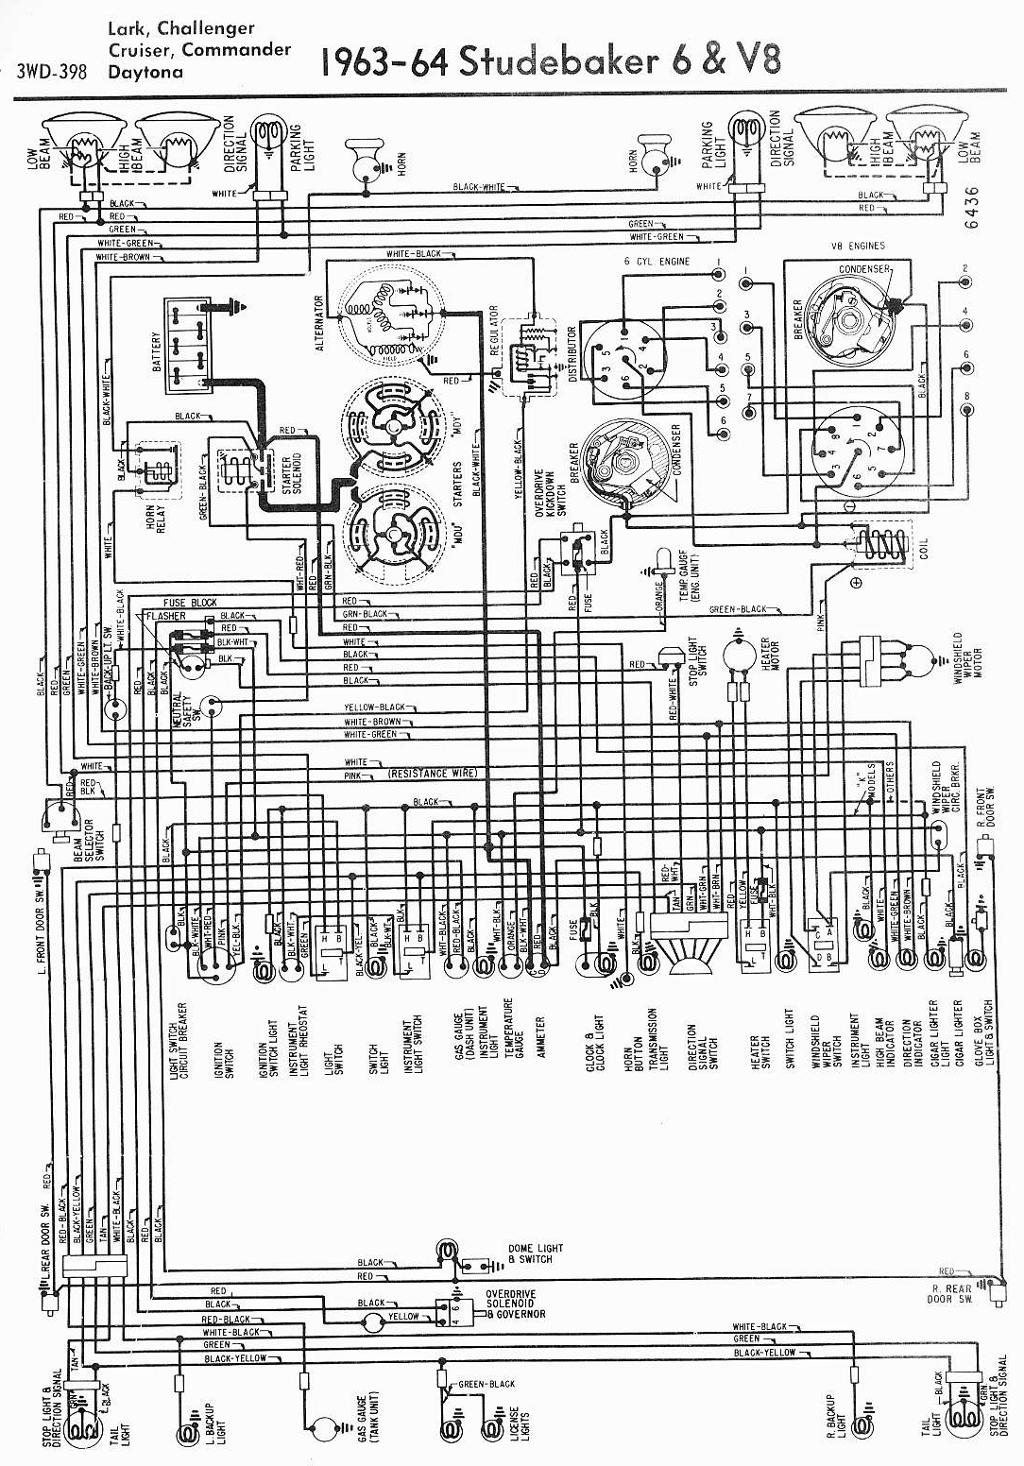 [WQZT_9871]  Lark Wiring Diagram - Honda Passport Fuse Box Diagram for Wiring Diagram  Schematics | Lark Wiring Diagram |  | Wiring Diagram Schematics